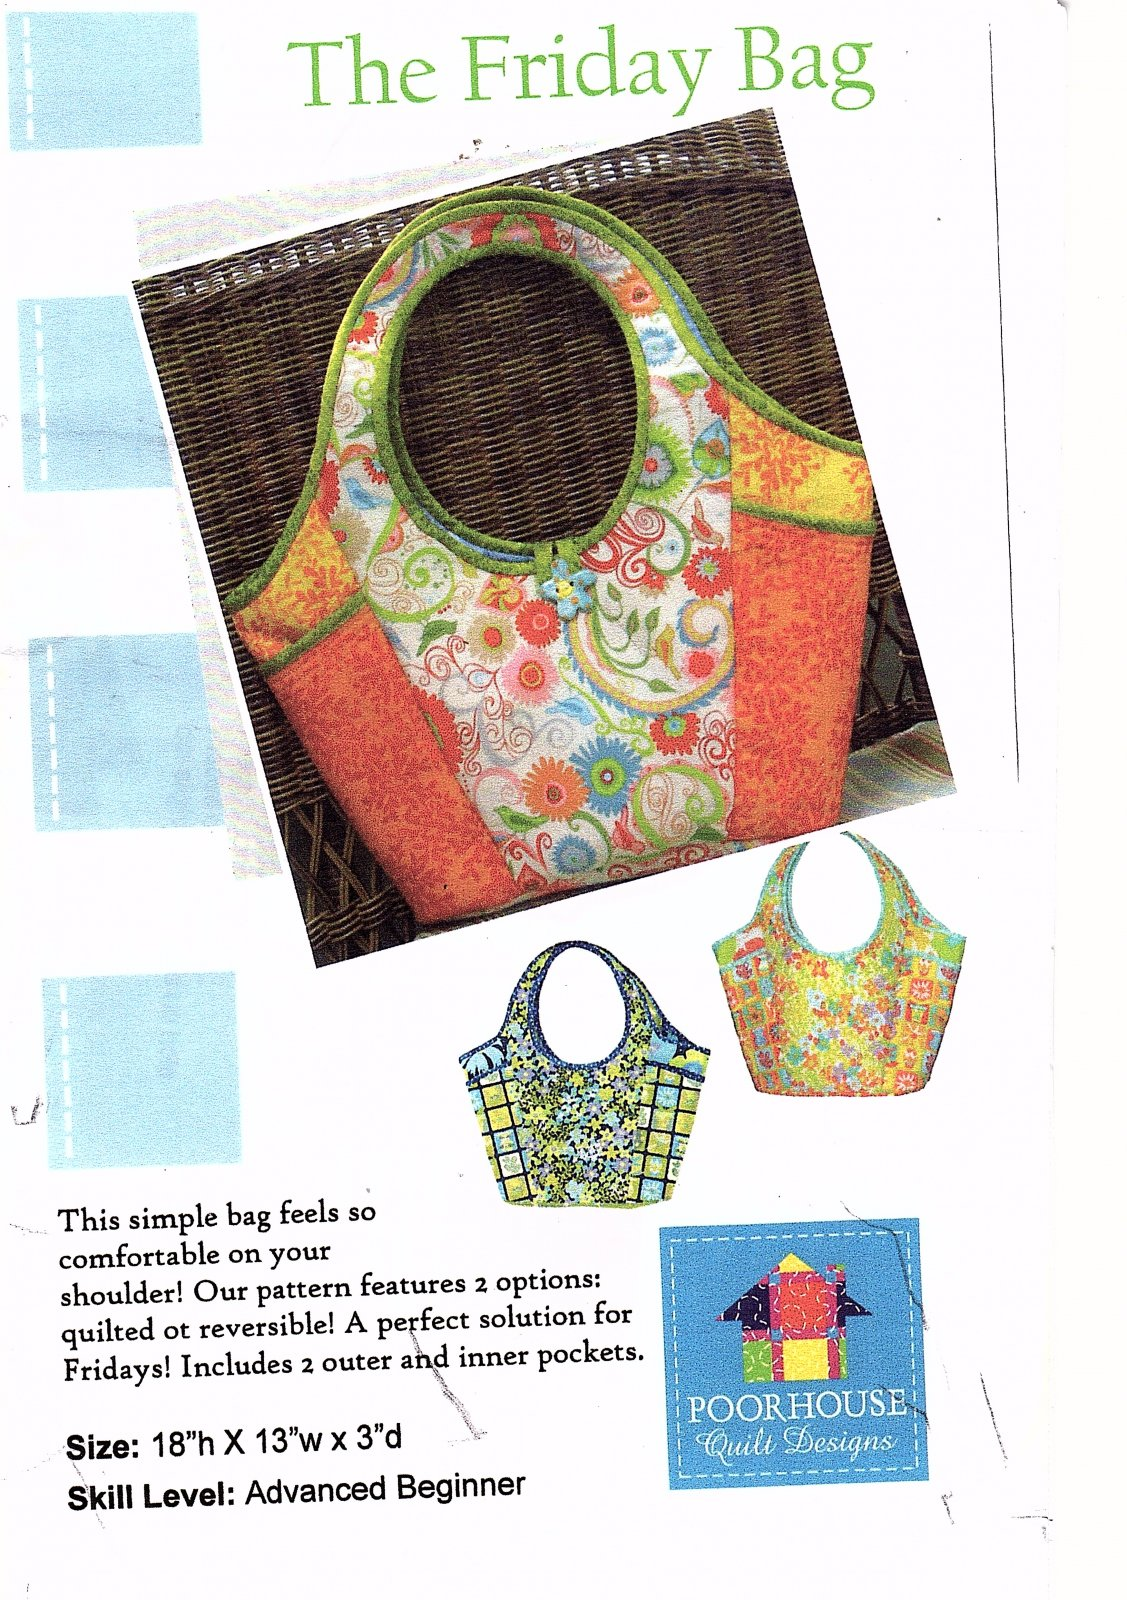 The Friday Bag by Poorhouse Quilt Designs PQD-162